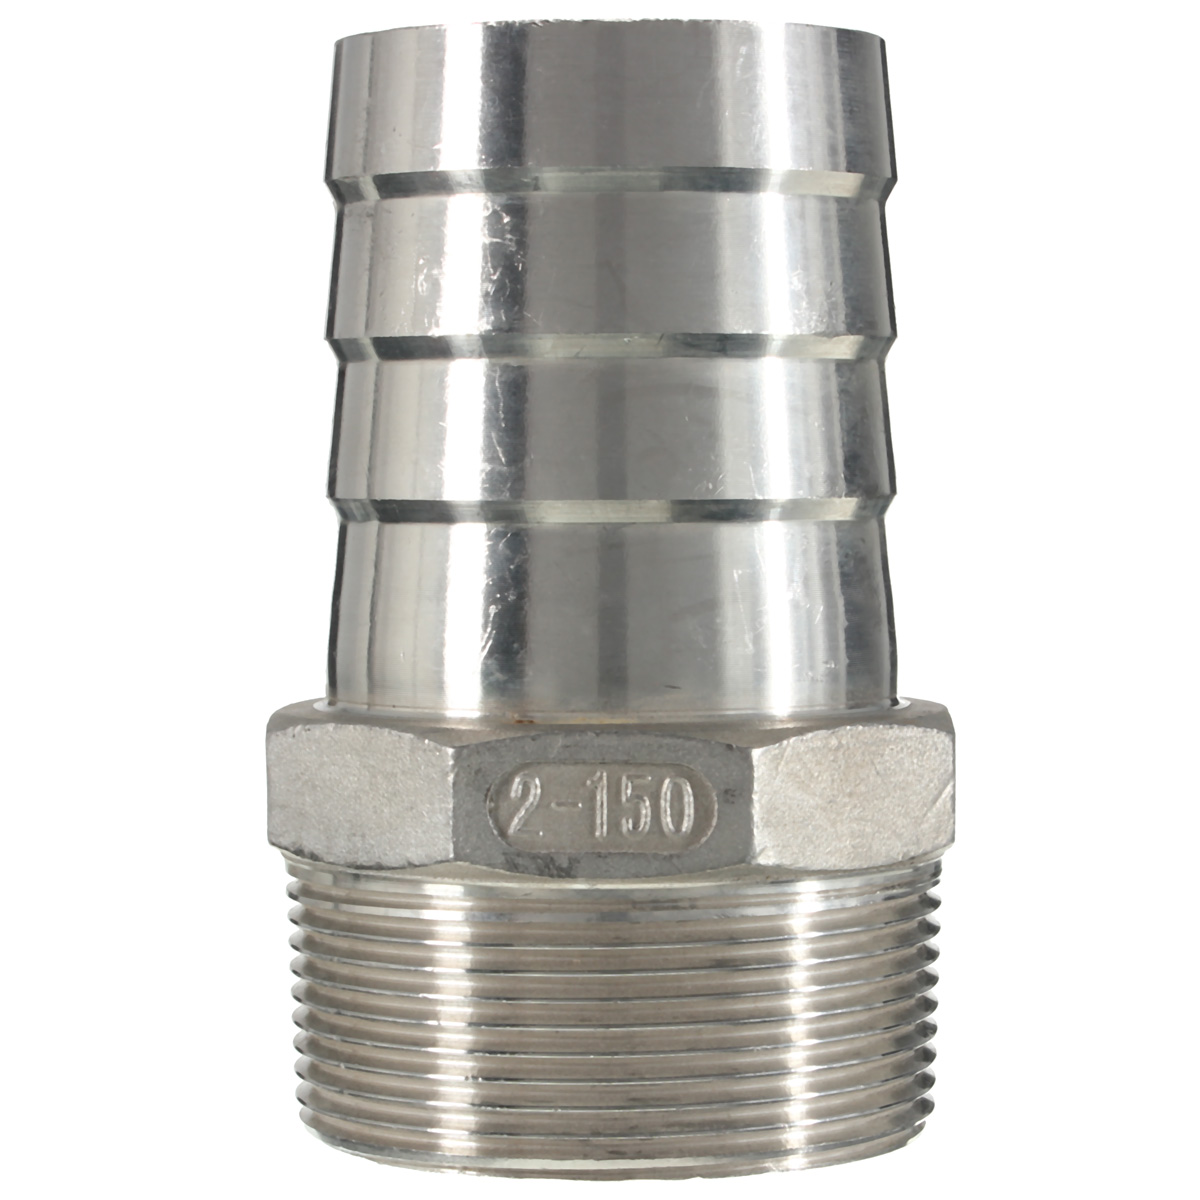 Stainless steel male thread pipe fitting barb hose tail